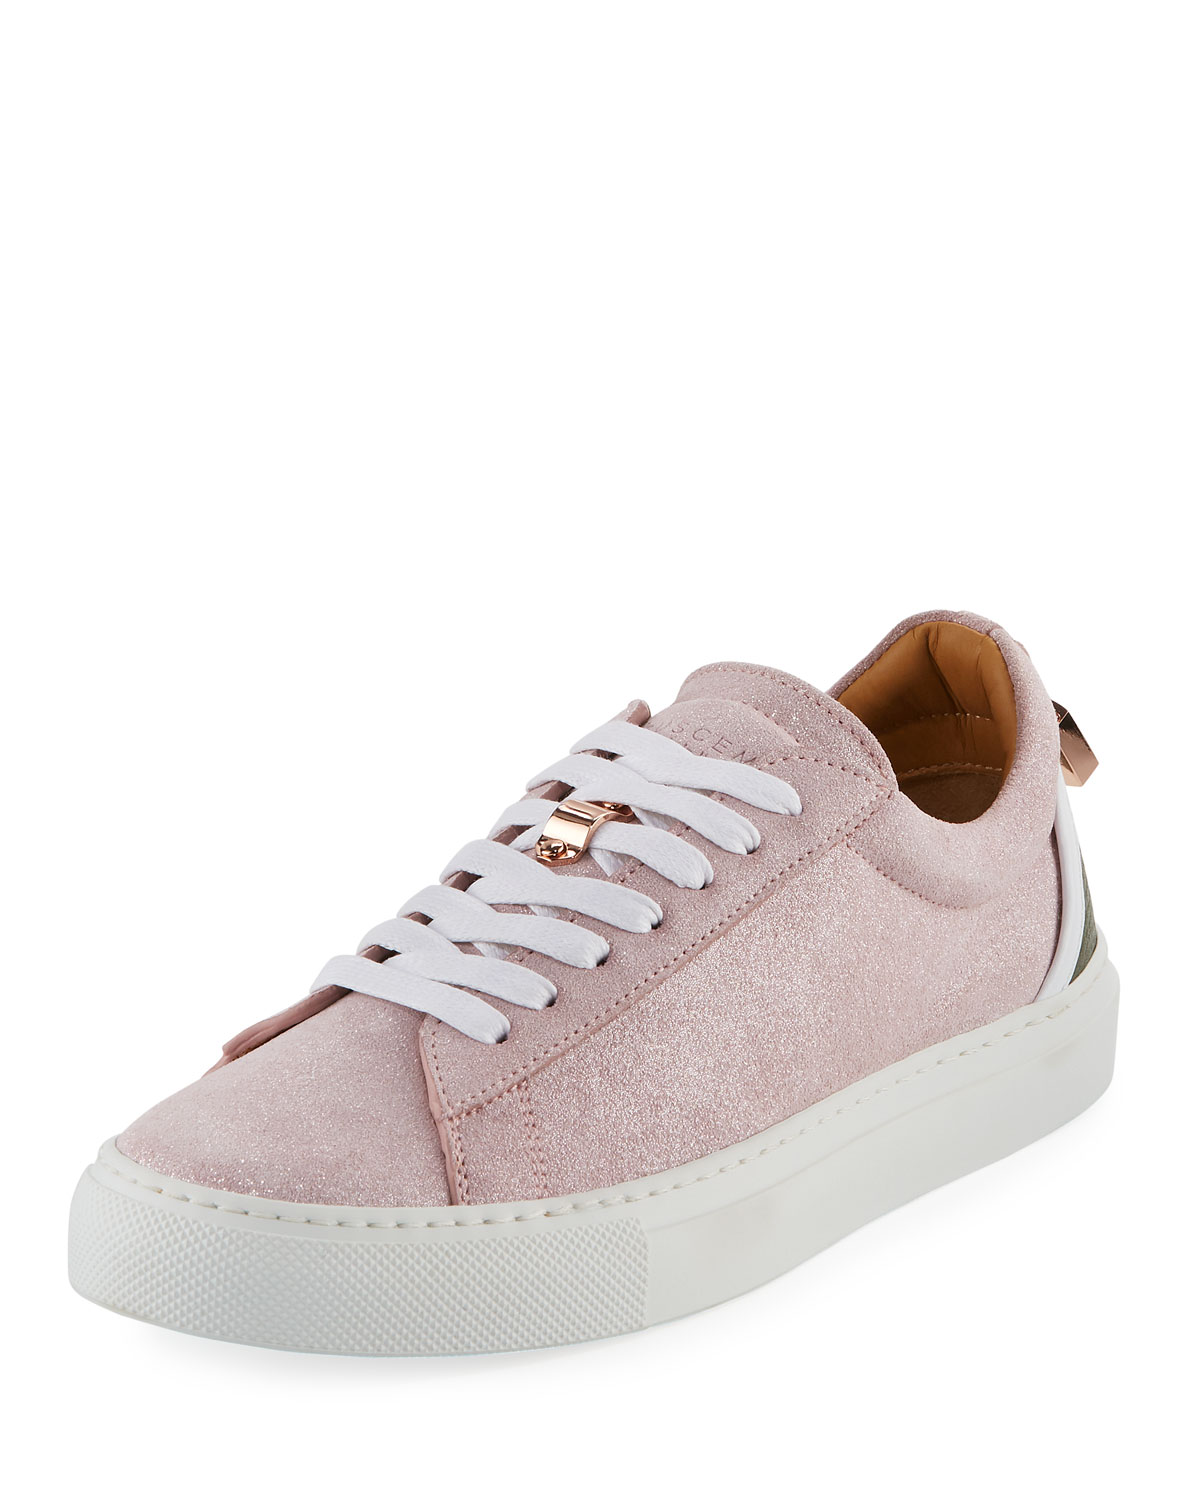 Buscemi TENNIS LOCK GLEAM SNEAKER